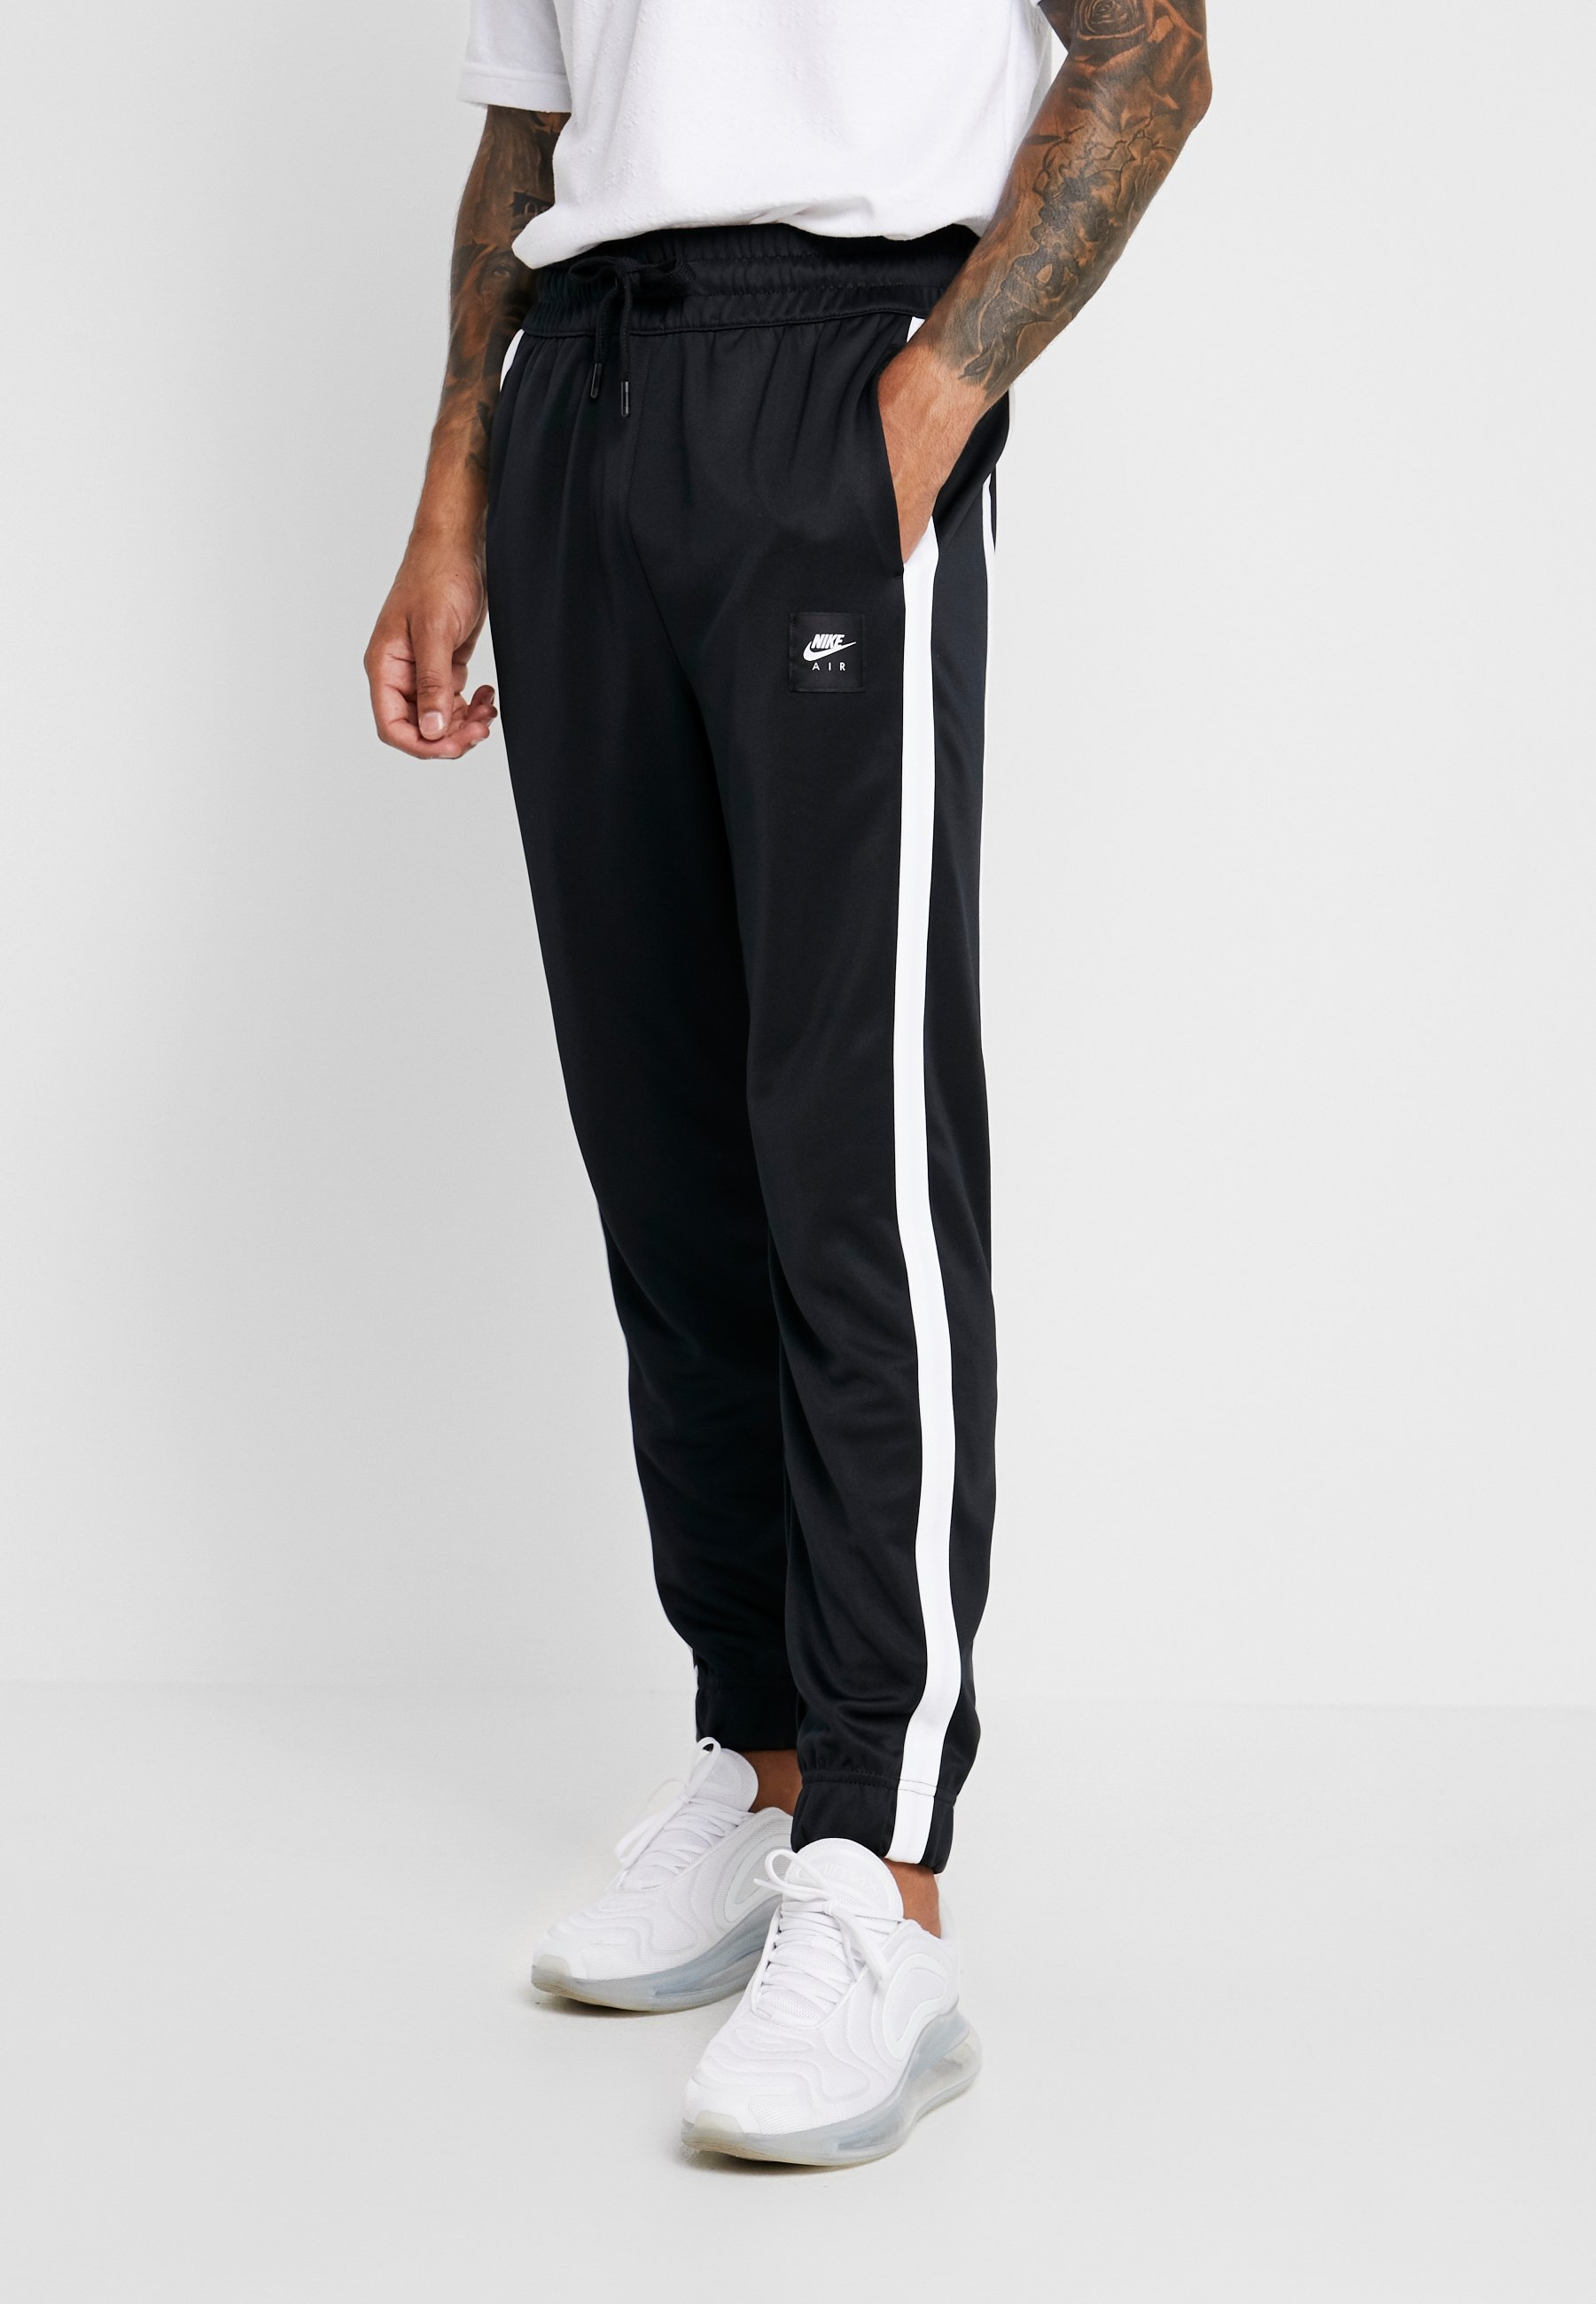 Nike PantPantalon Sportswear Black De Air white Survêtement kOXZTPiu